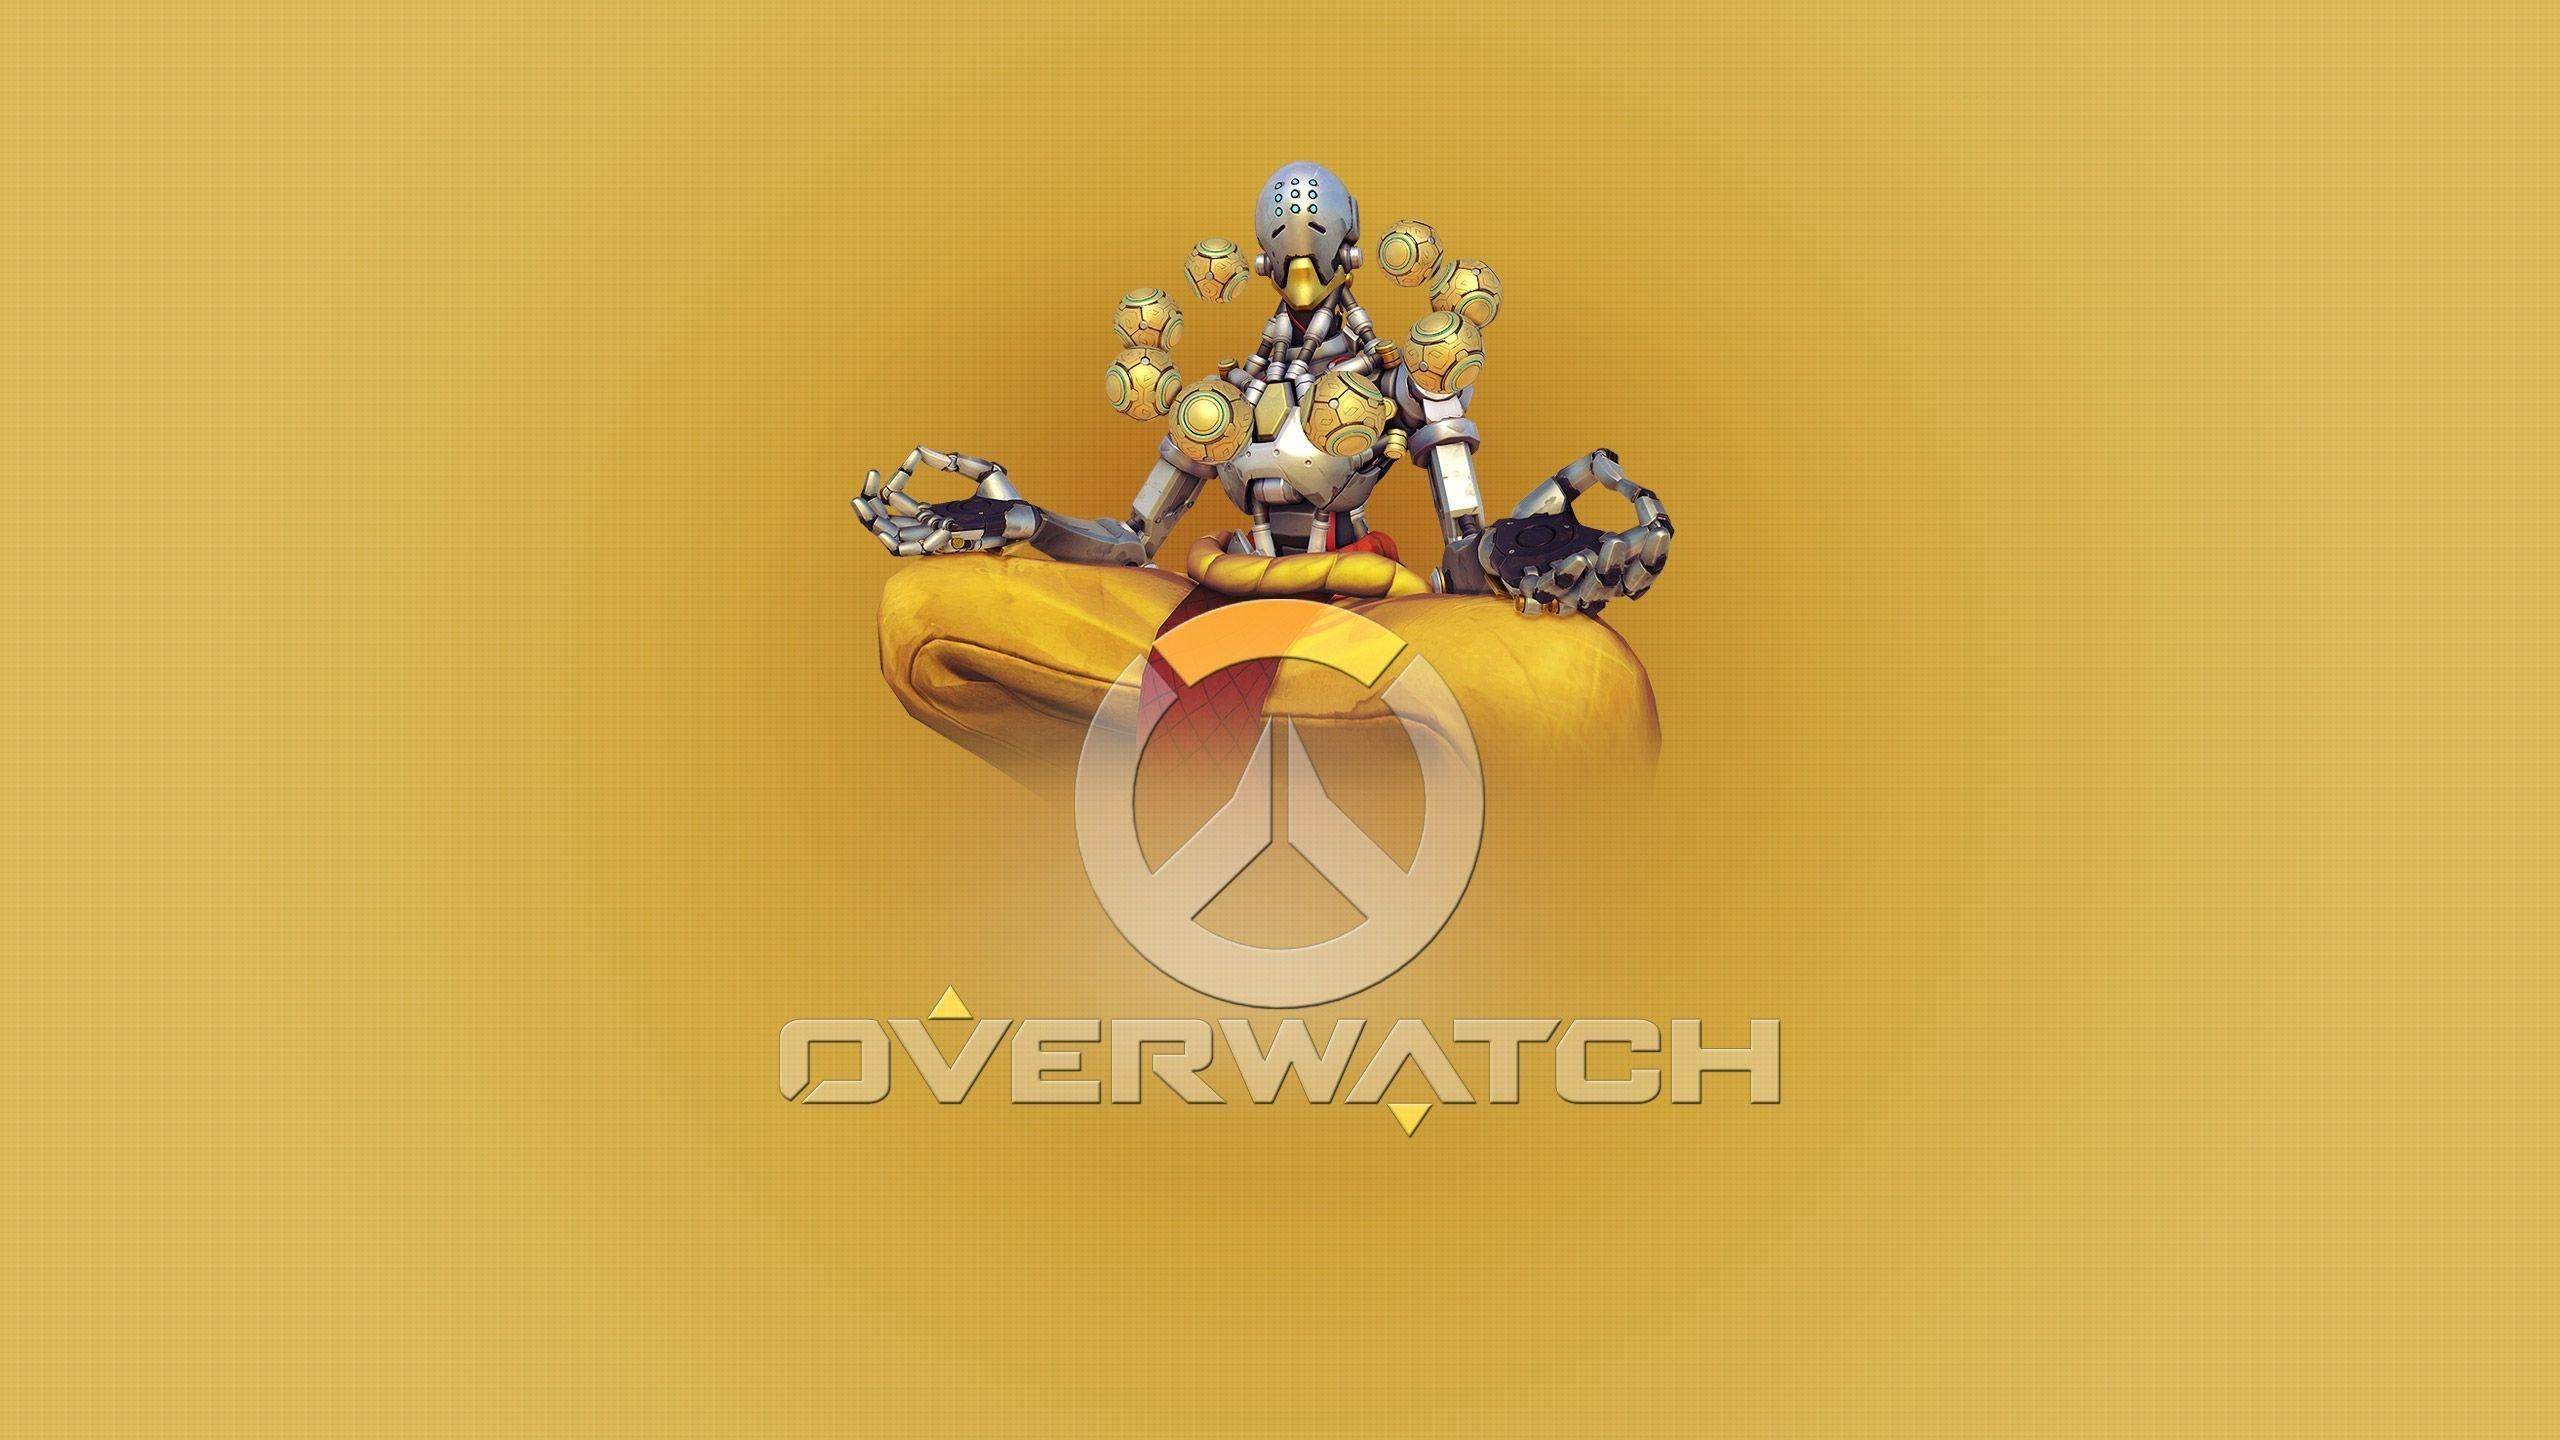 2560x1440 Free Wallpapers - Overwatch Zenyatta wallpaper